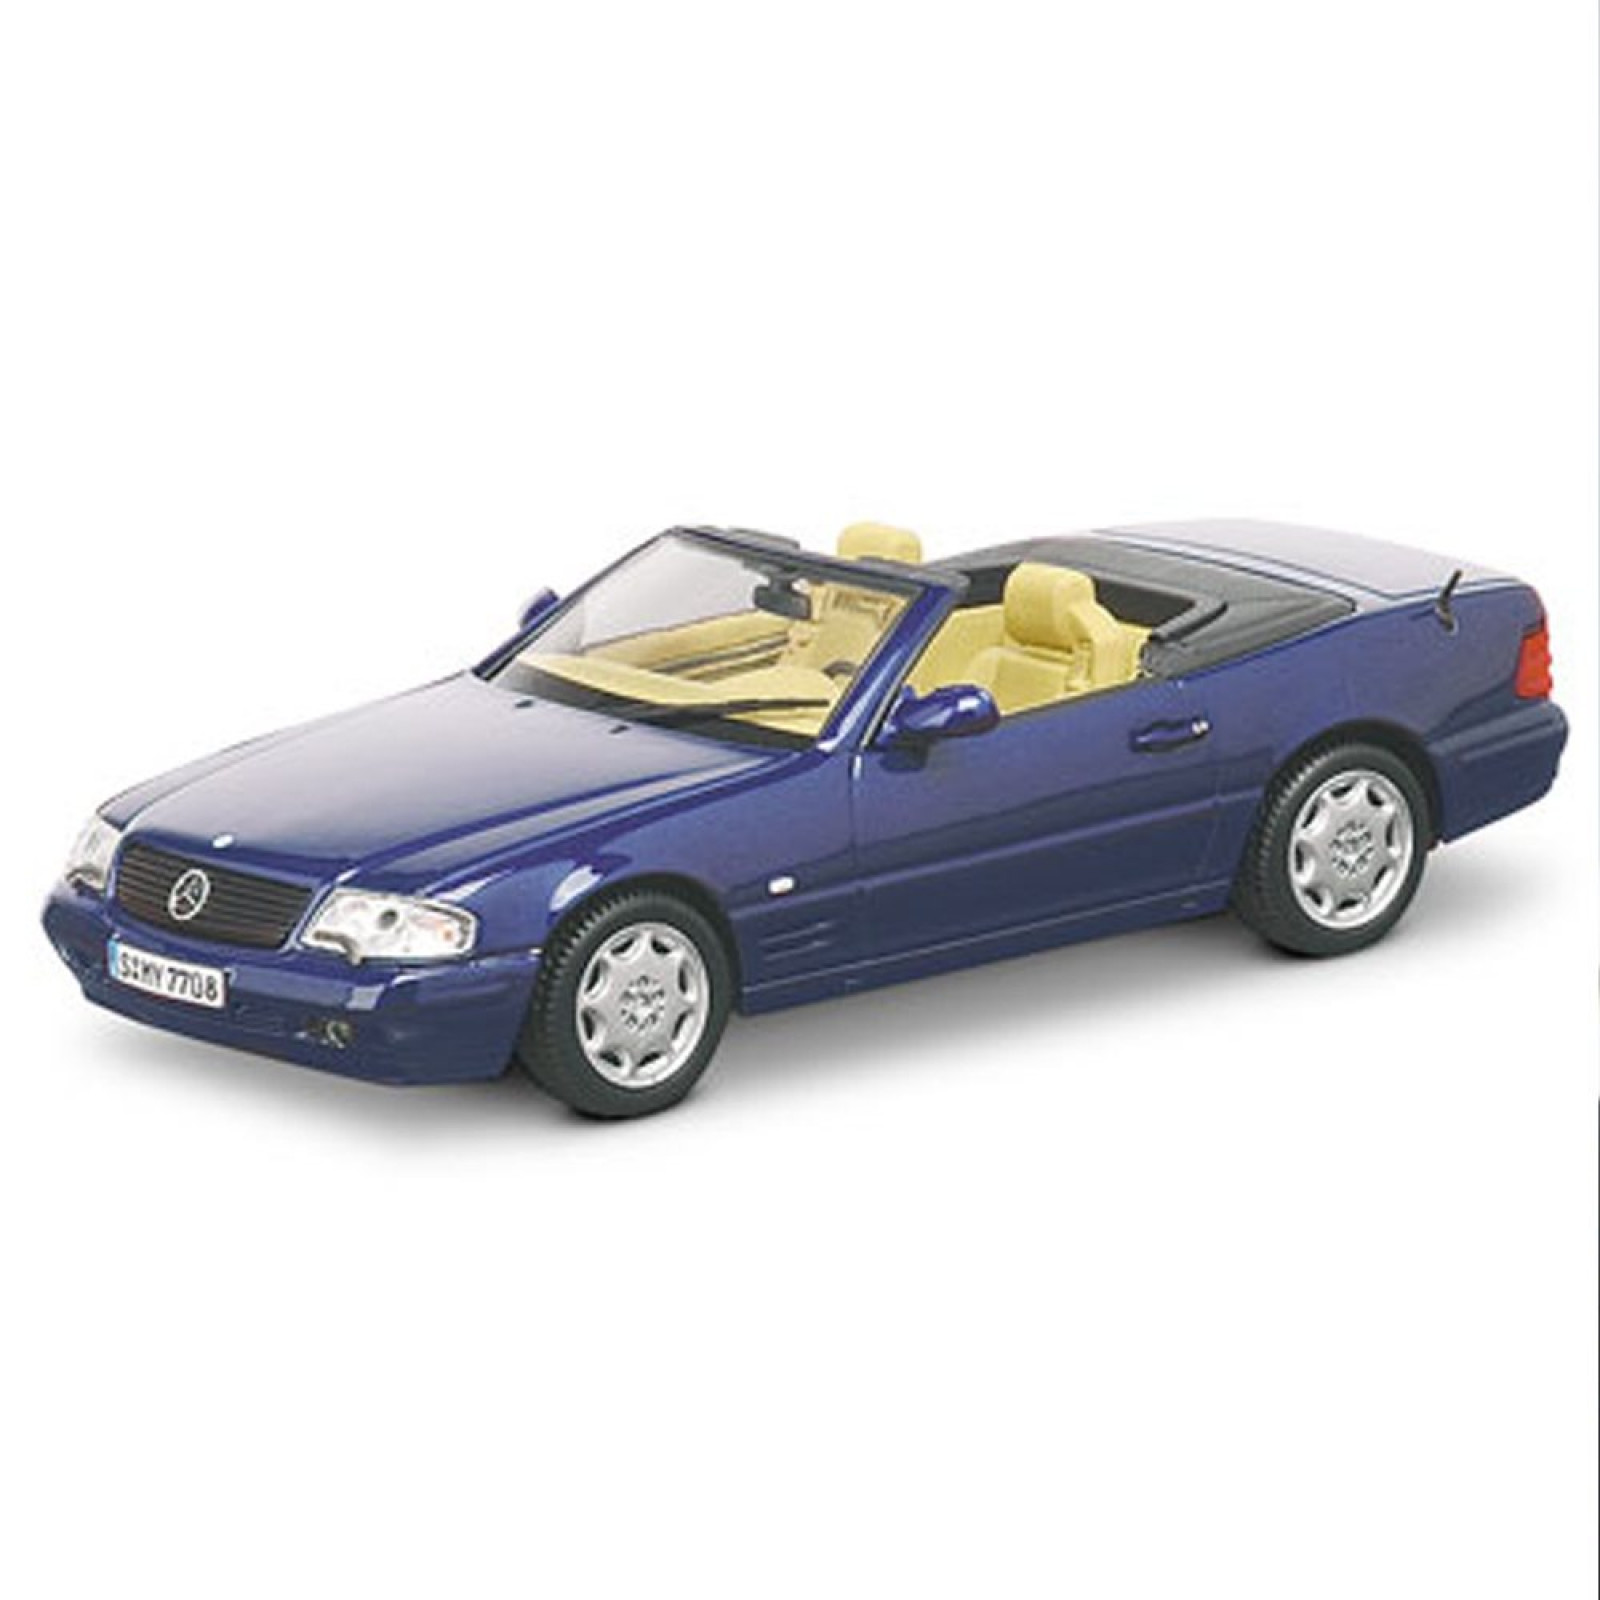 Mercedes benz 1998 39 01 r129 500sl 1 43 scale diecast model for Diecast mercedes benz